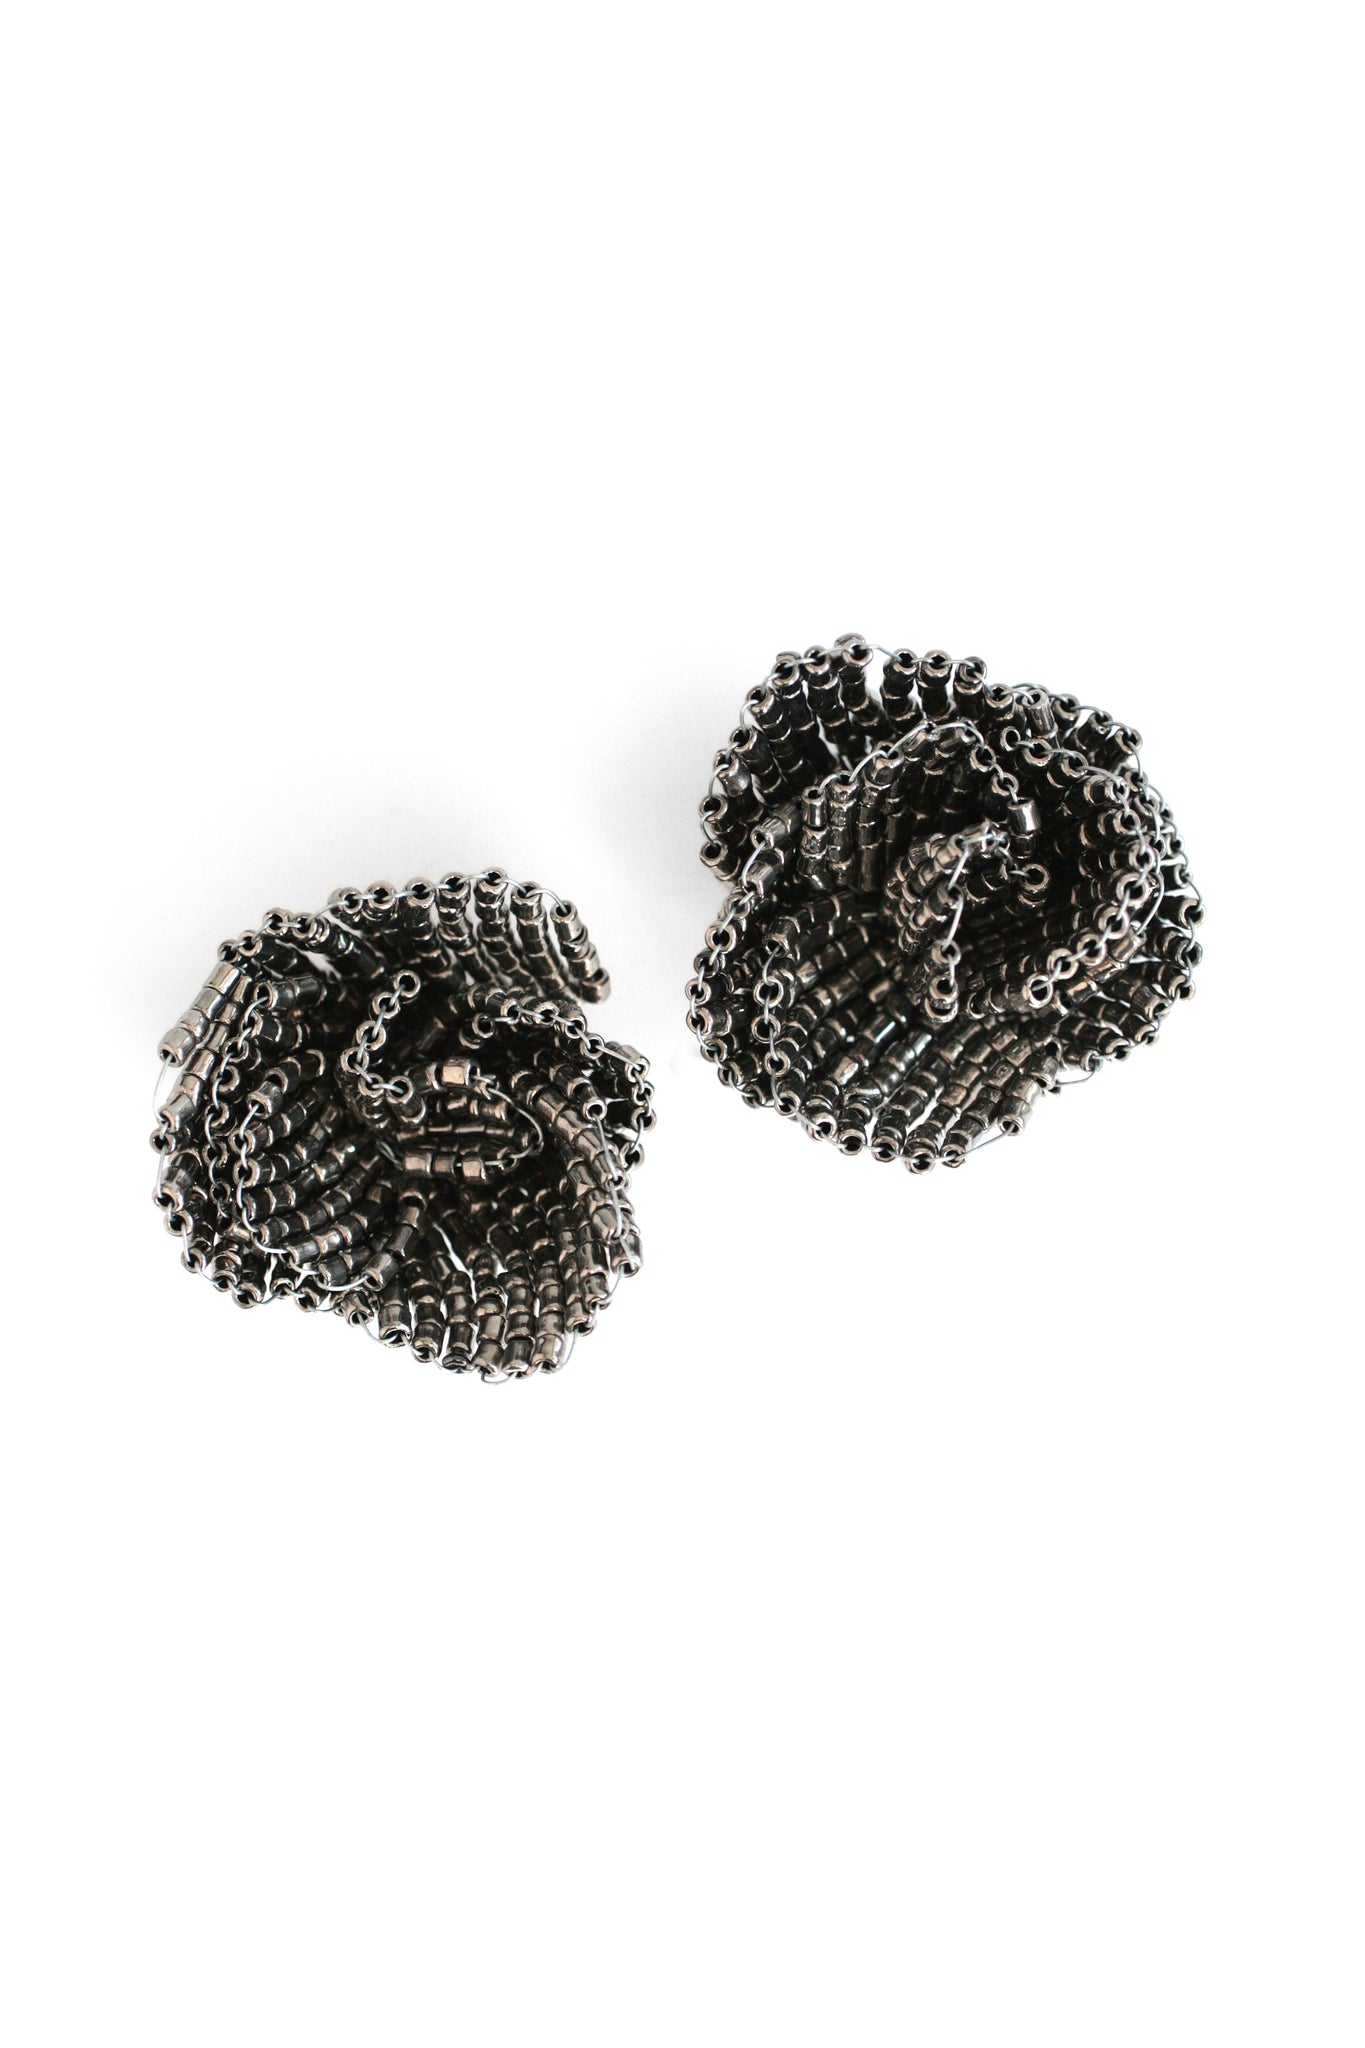 Festive Floral Earrings - Black